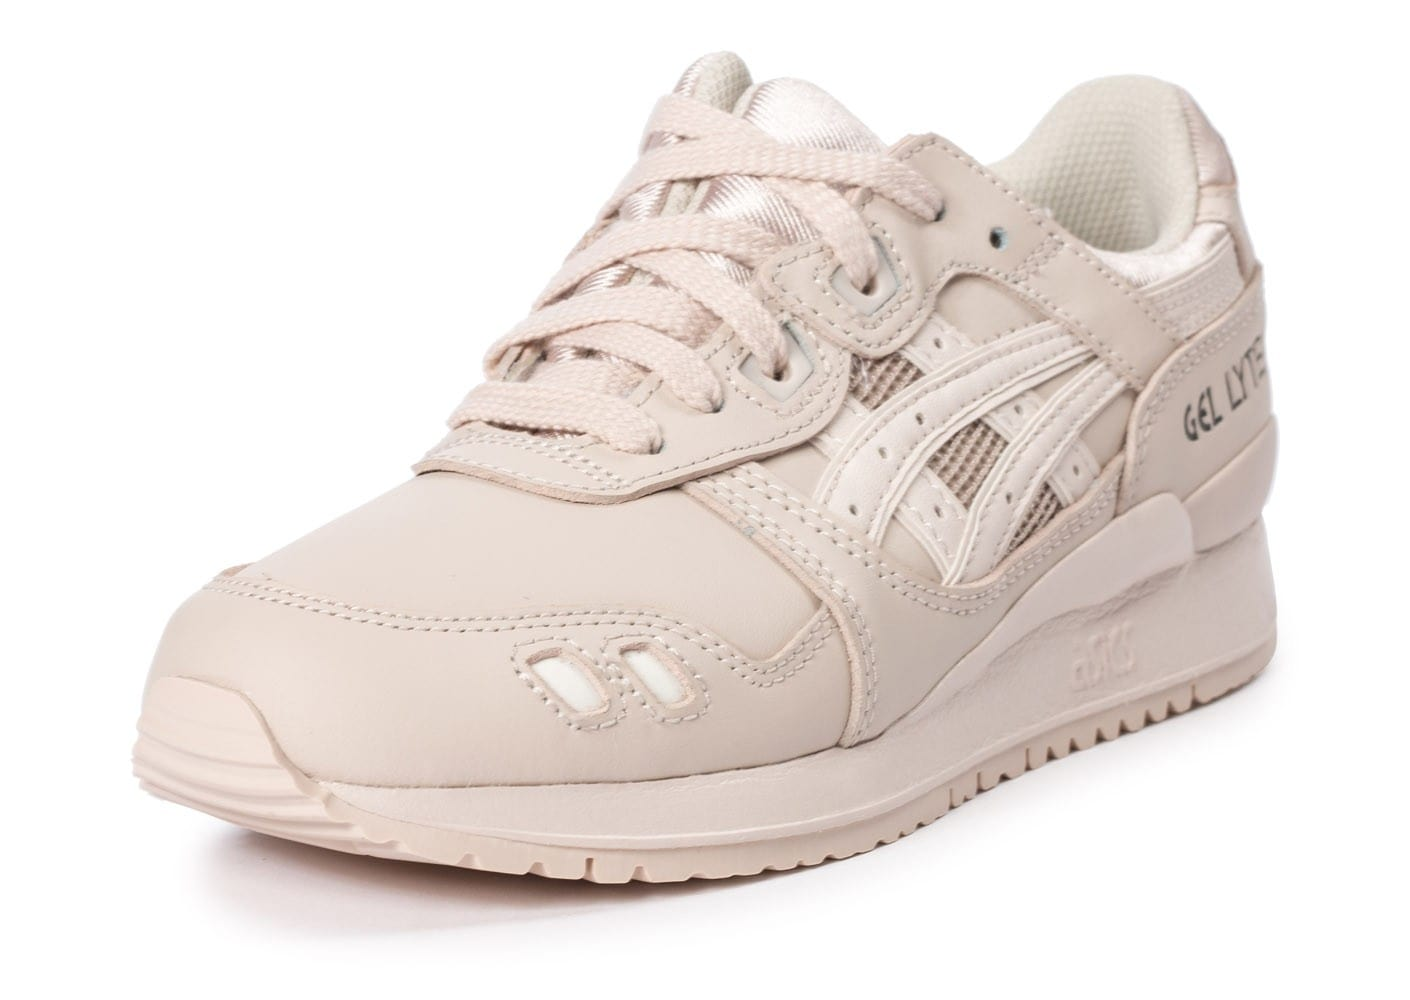 asics gel lyte 3 rose pale. Black Bedroom Furniture Sets. Home Design Ideas